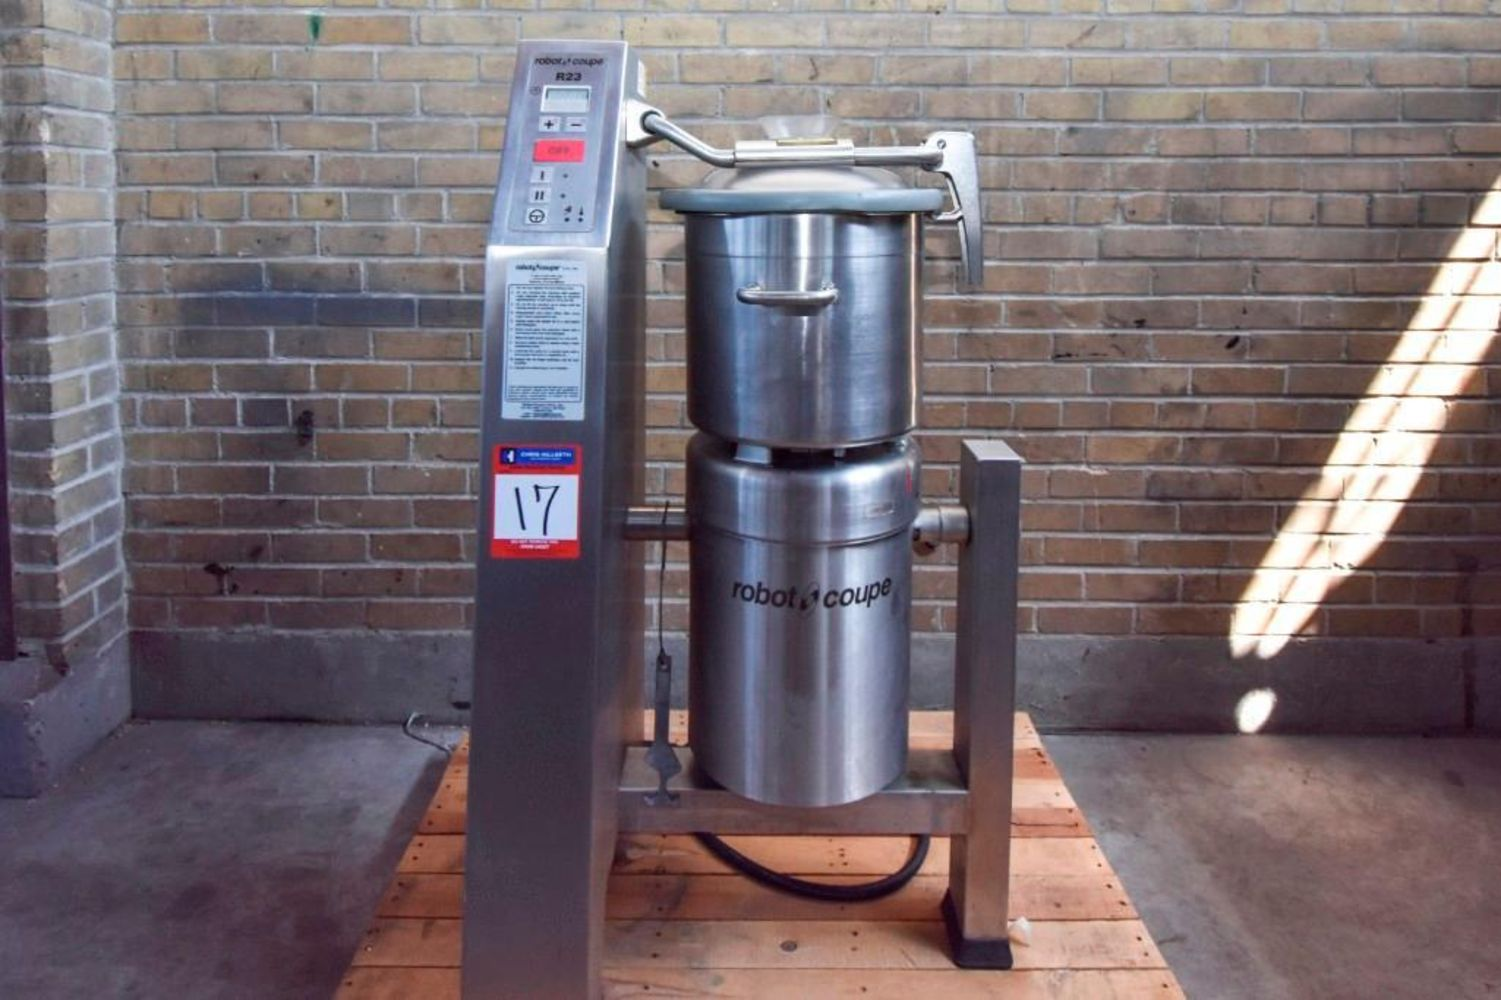 Nutraceutical Manufacturing, Processing, & Packaging Equipment (Multiple Locations)